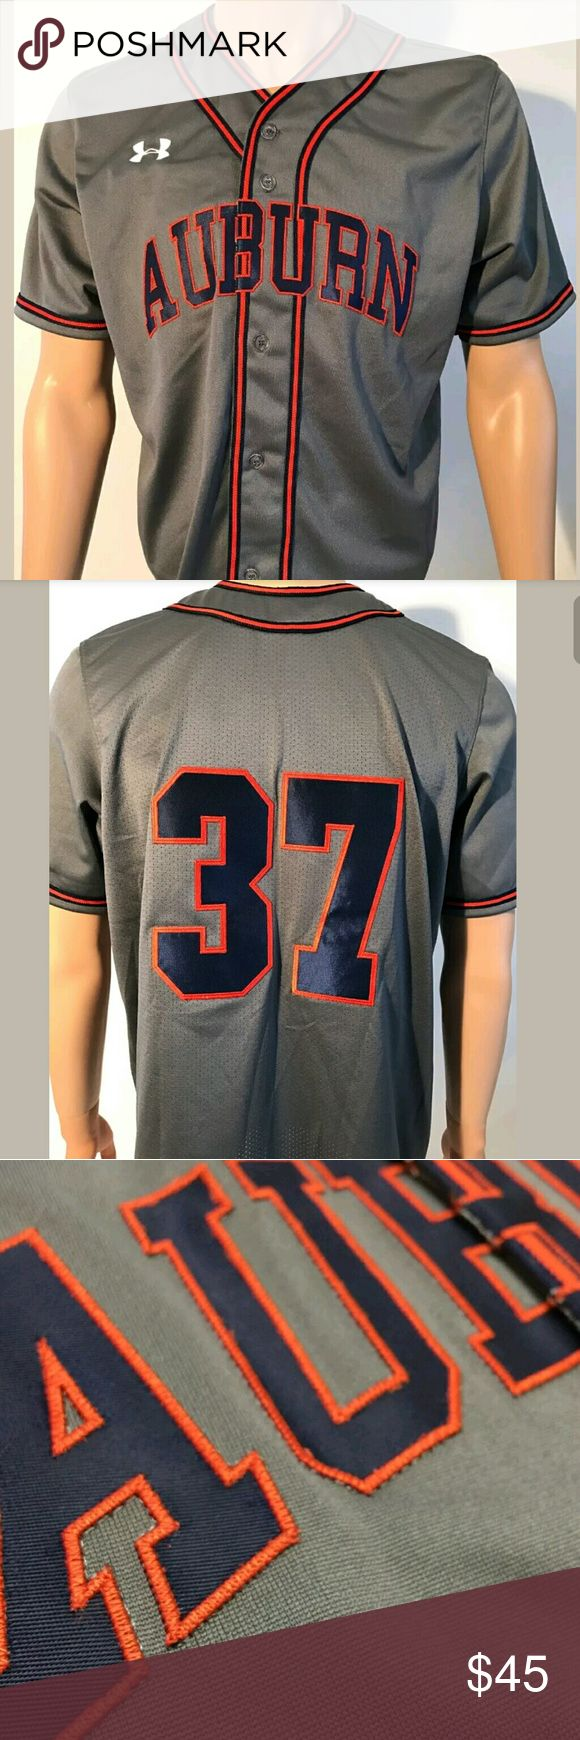 Under Armour University of Auburn Baseball Jersey Under Armour University of Auburn Baseball Team Issued Jersey Size Medium M Button Down Front. Under Armour Other